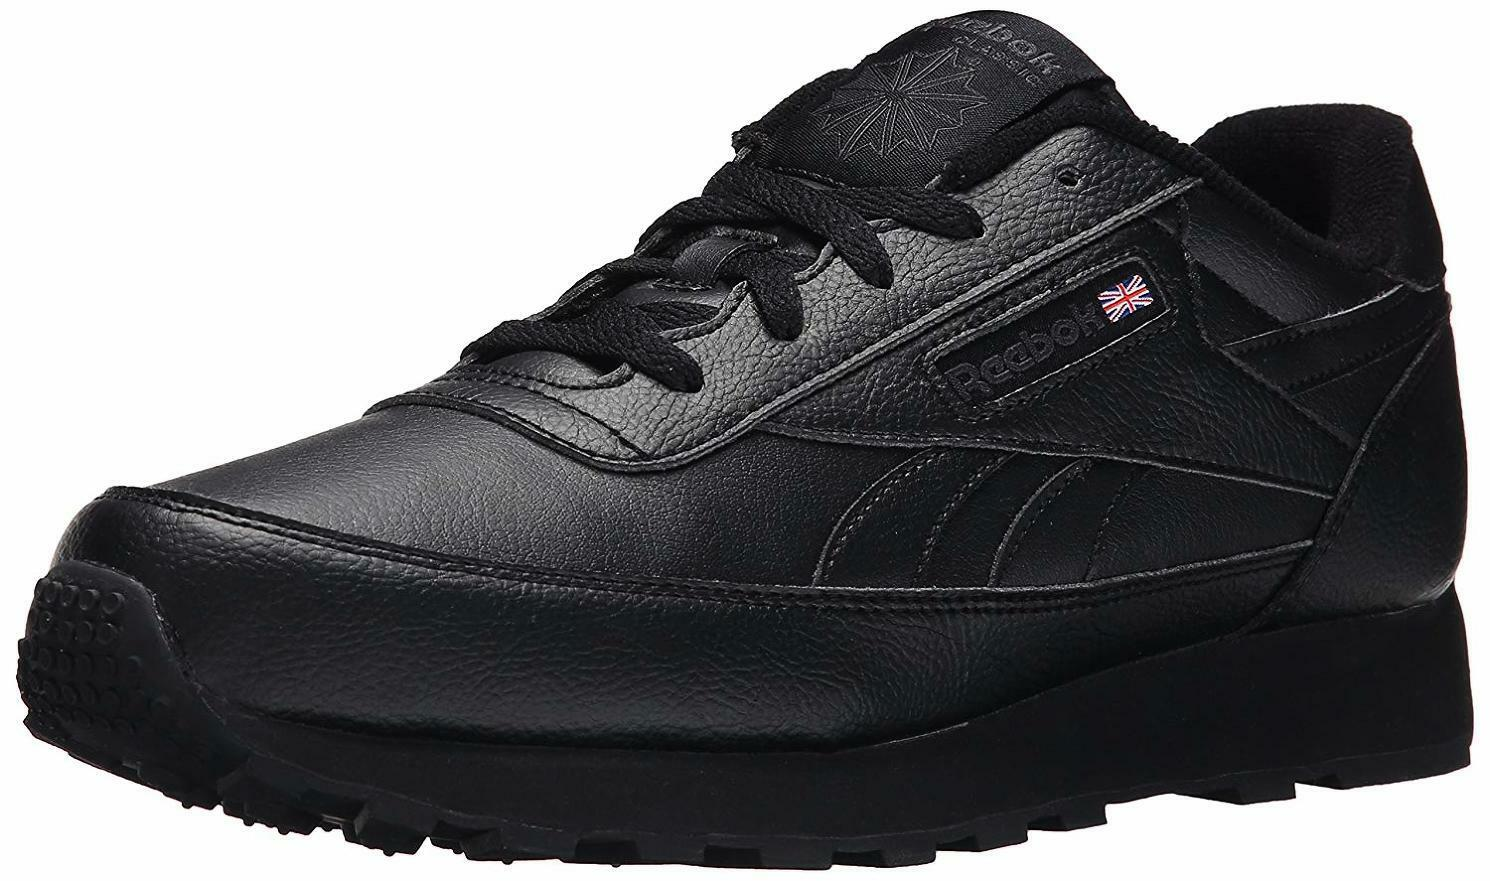 Reebok Men's Classic Renaissance Fashion Sneaker - Choose SZ color